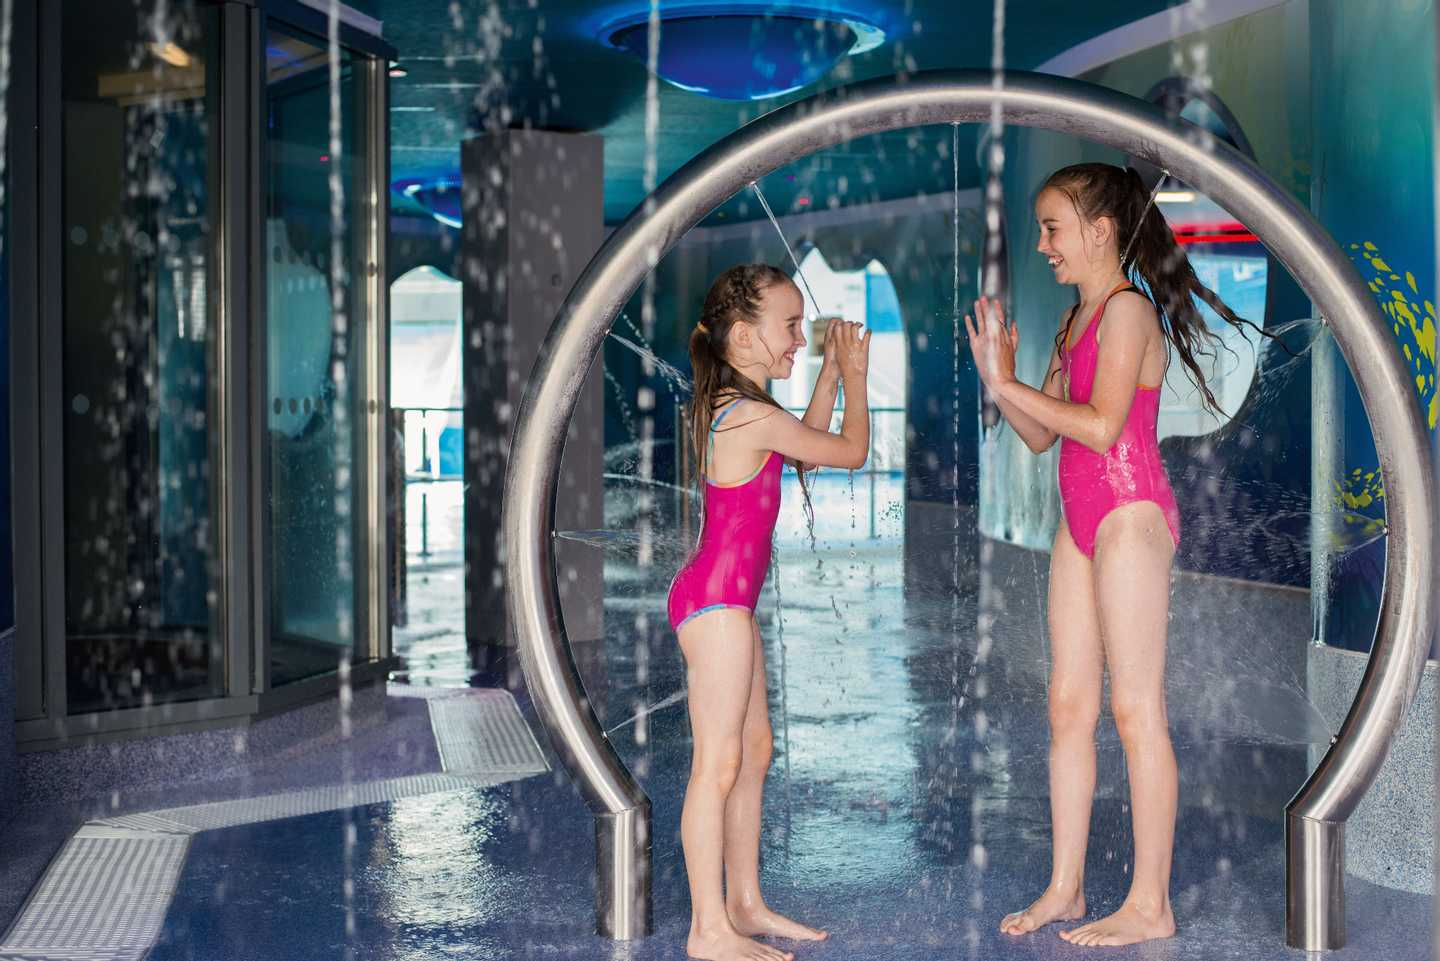 Girls playing games in the SplashZone grotto